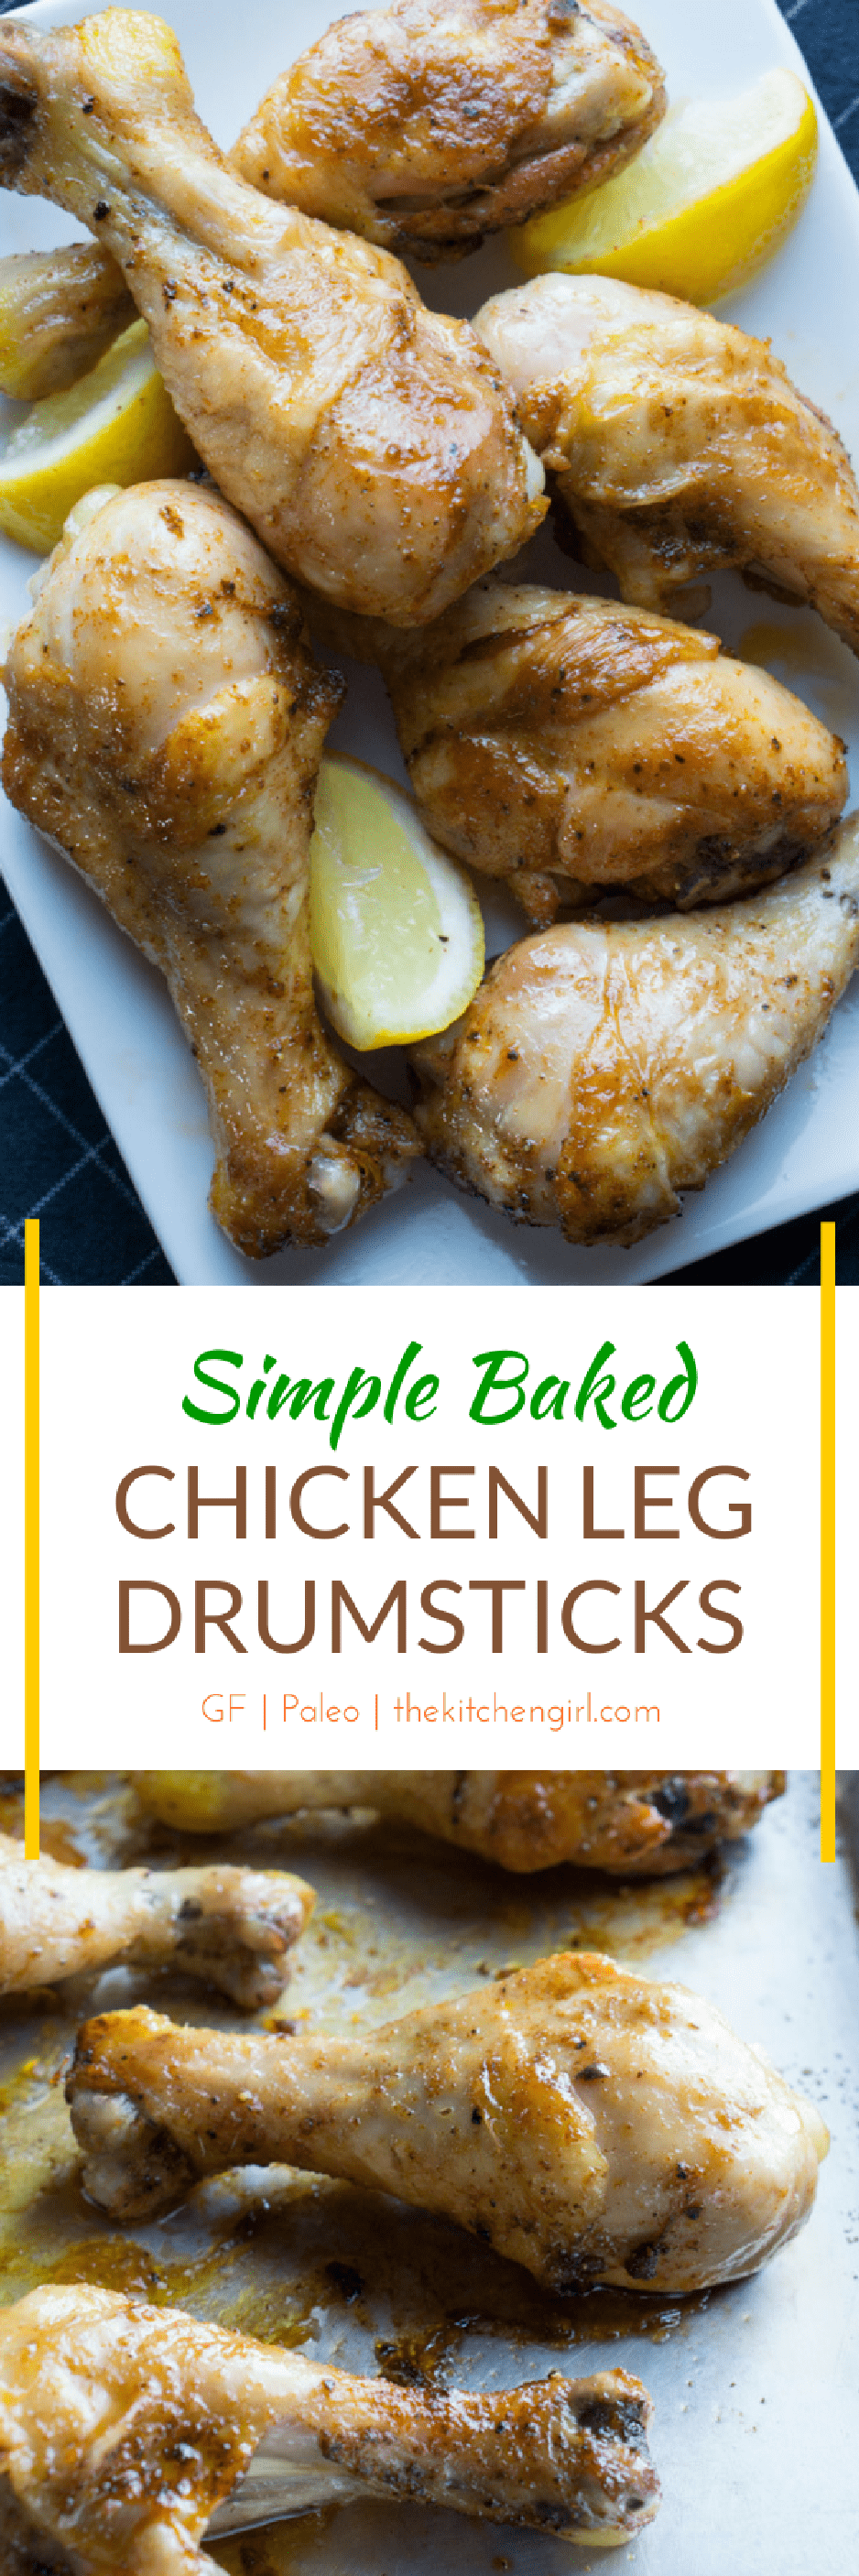 Simple Baked Chicken Leg Drumsticks By The Kitchen Girl